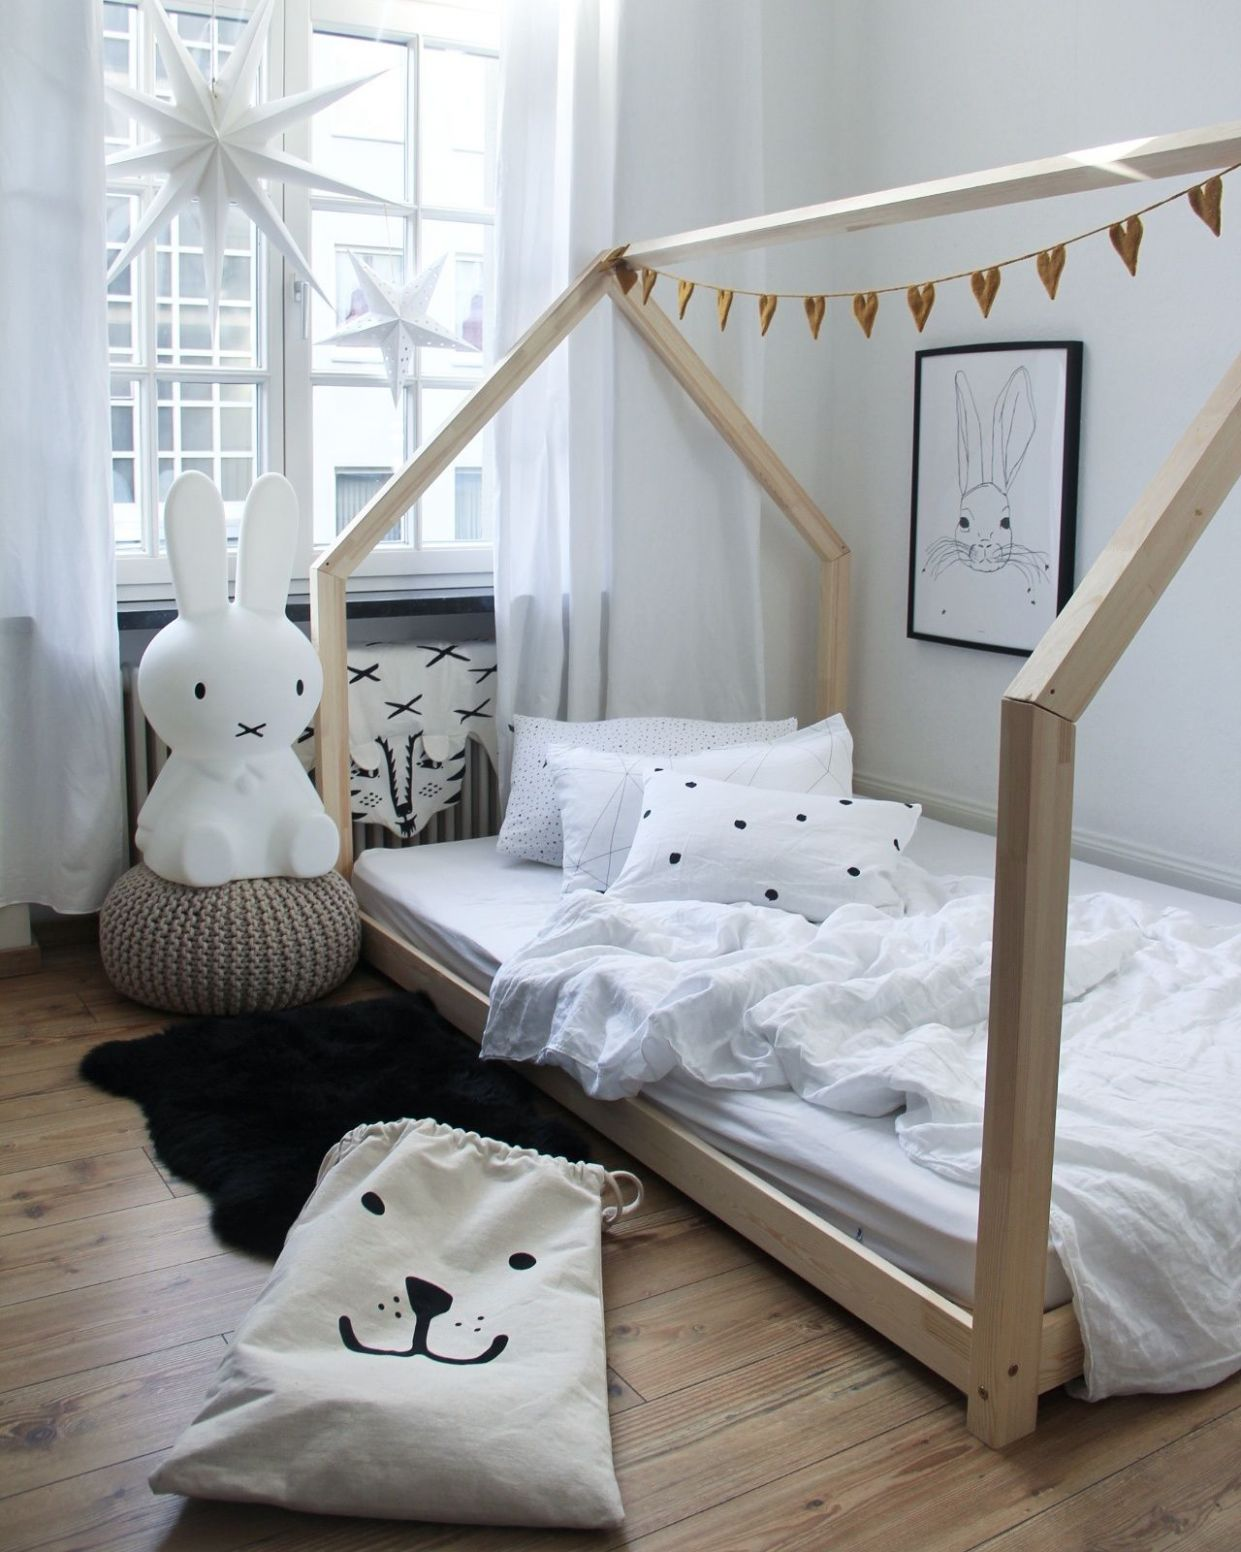 House bed DIY inspiration: loving the details in this room | mr ..